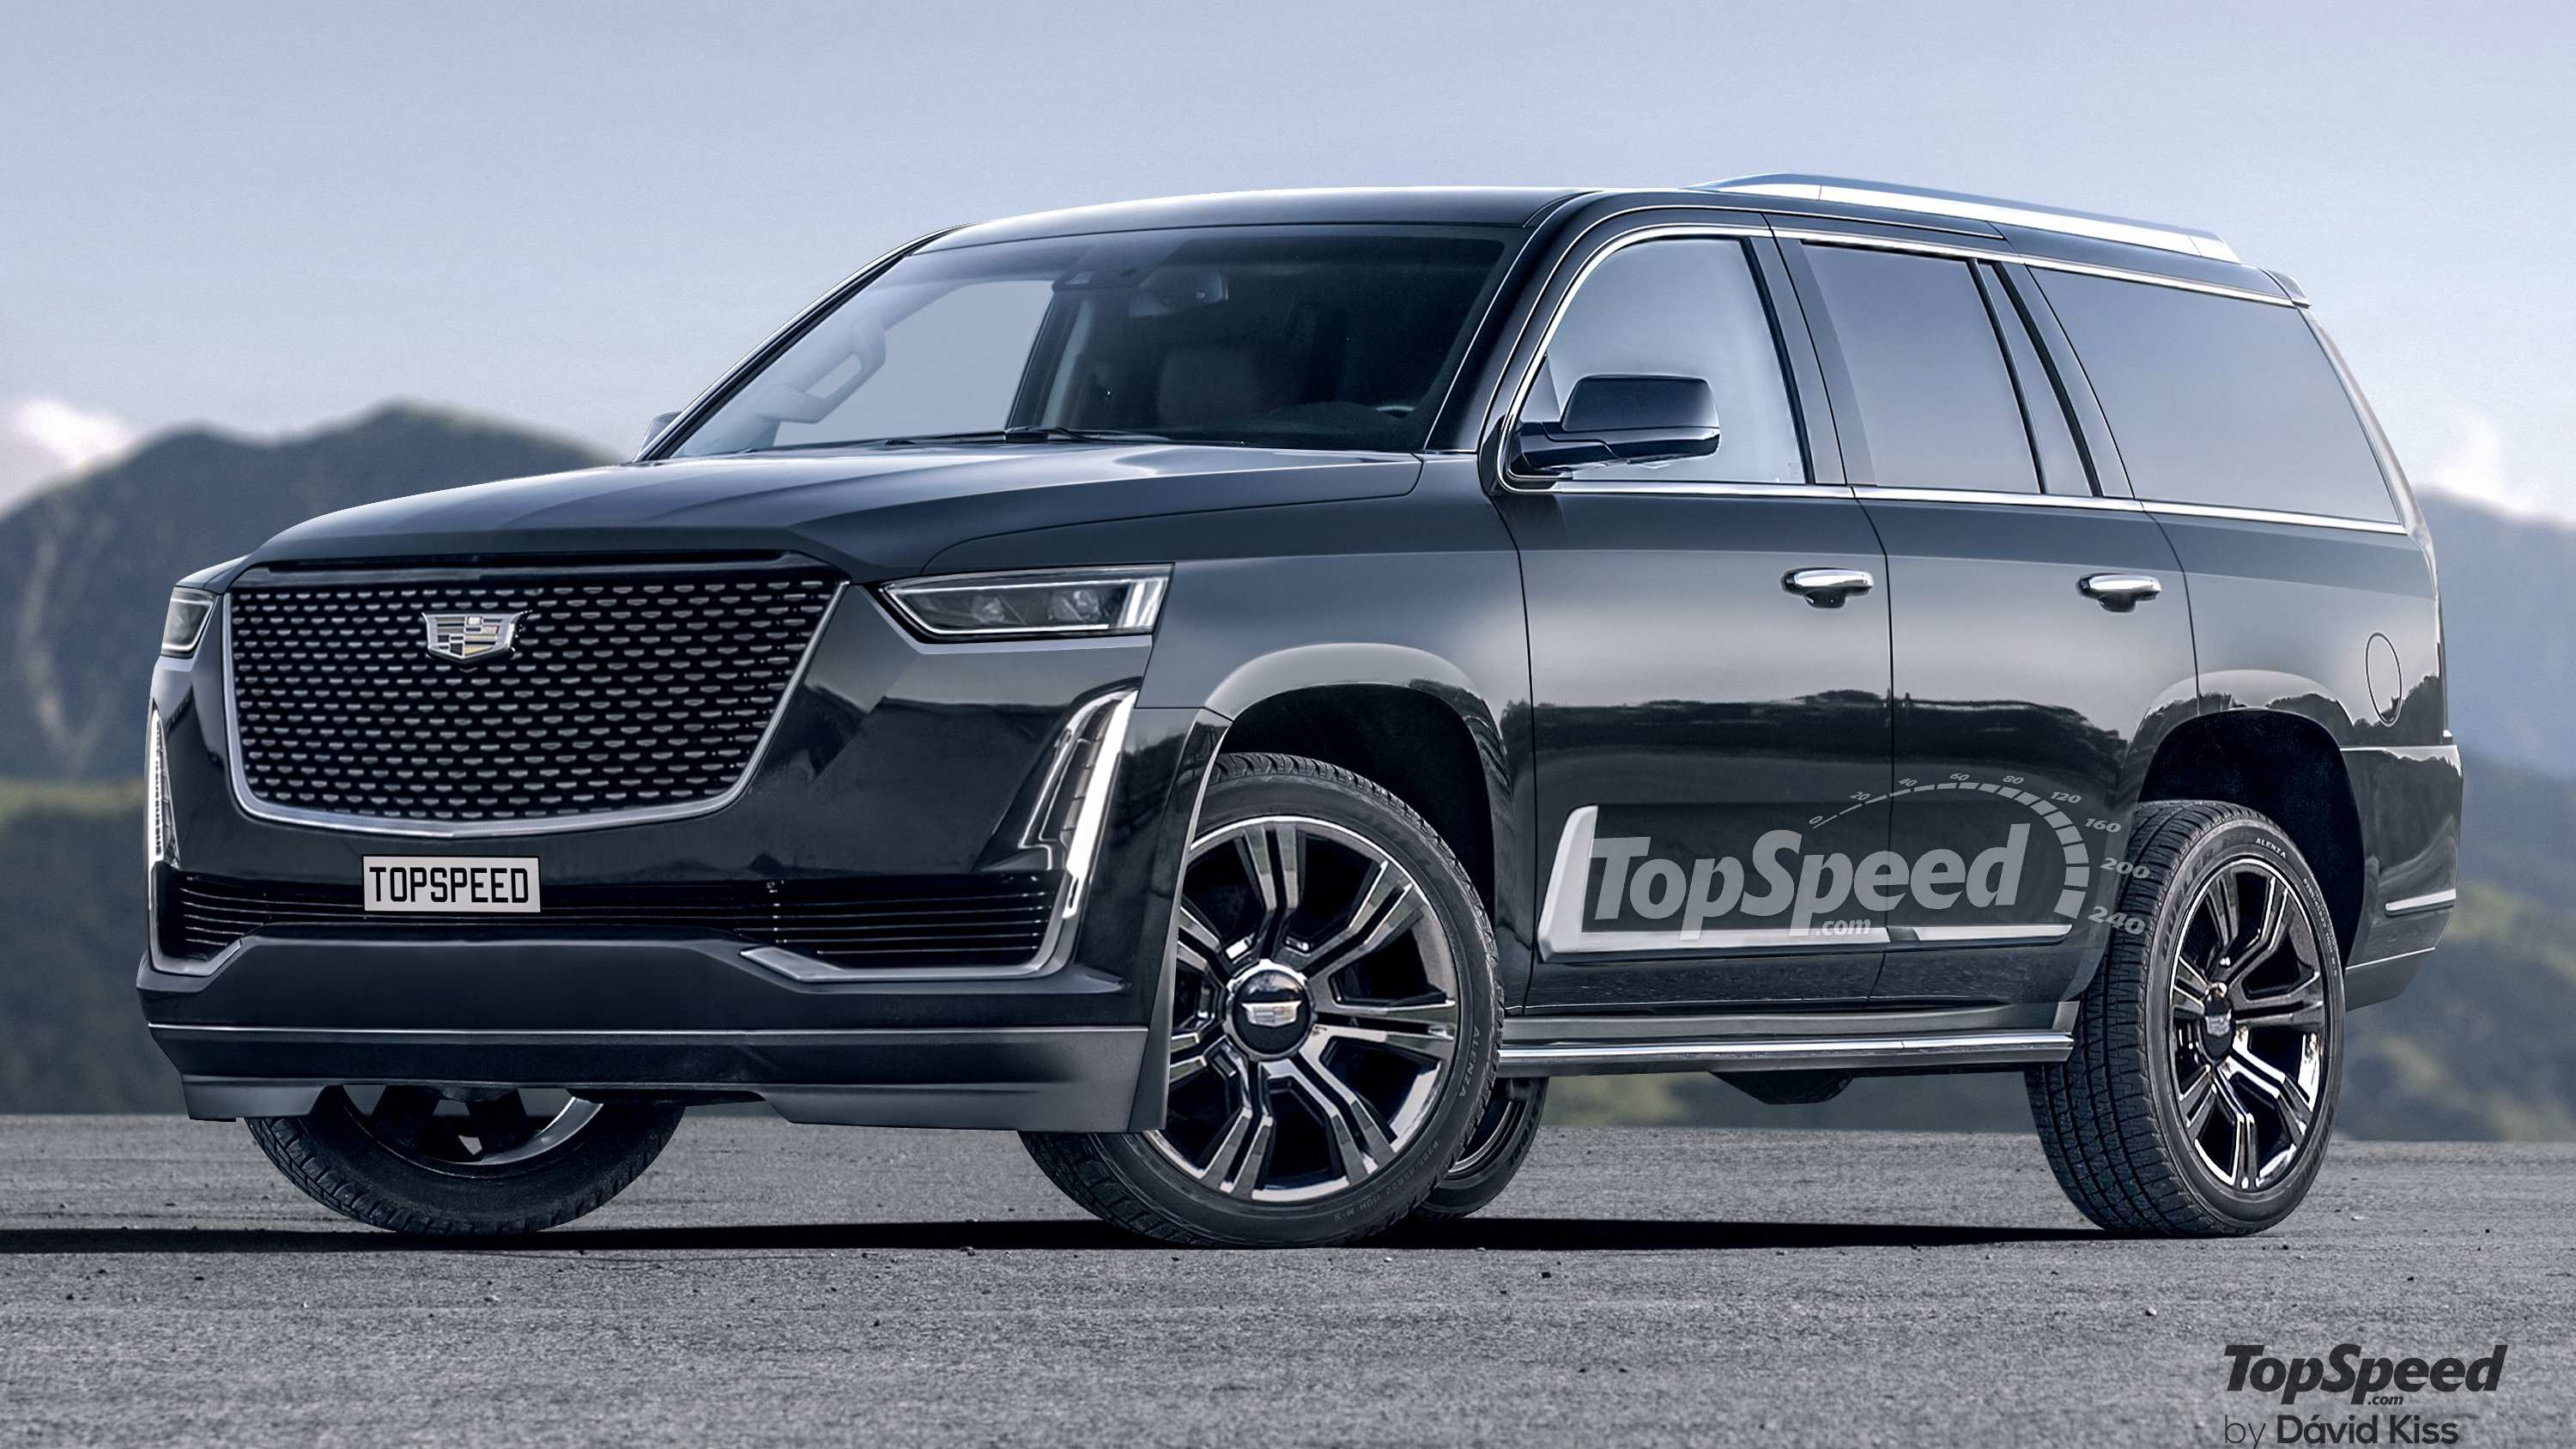 92 The Best Release Date For 2020 Cadillac Escalade Price Design And Review